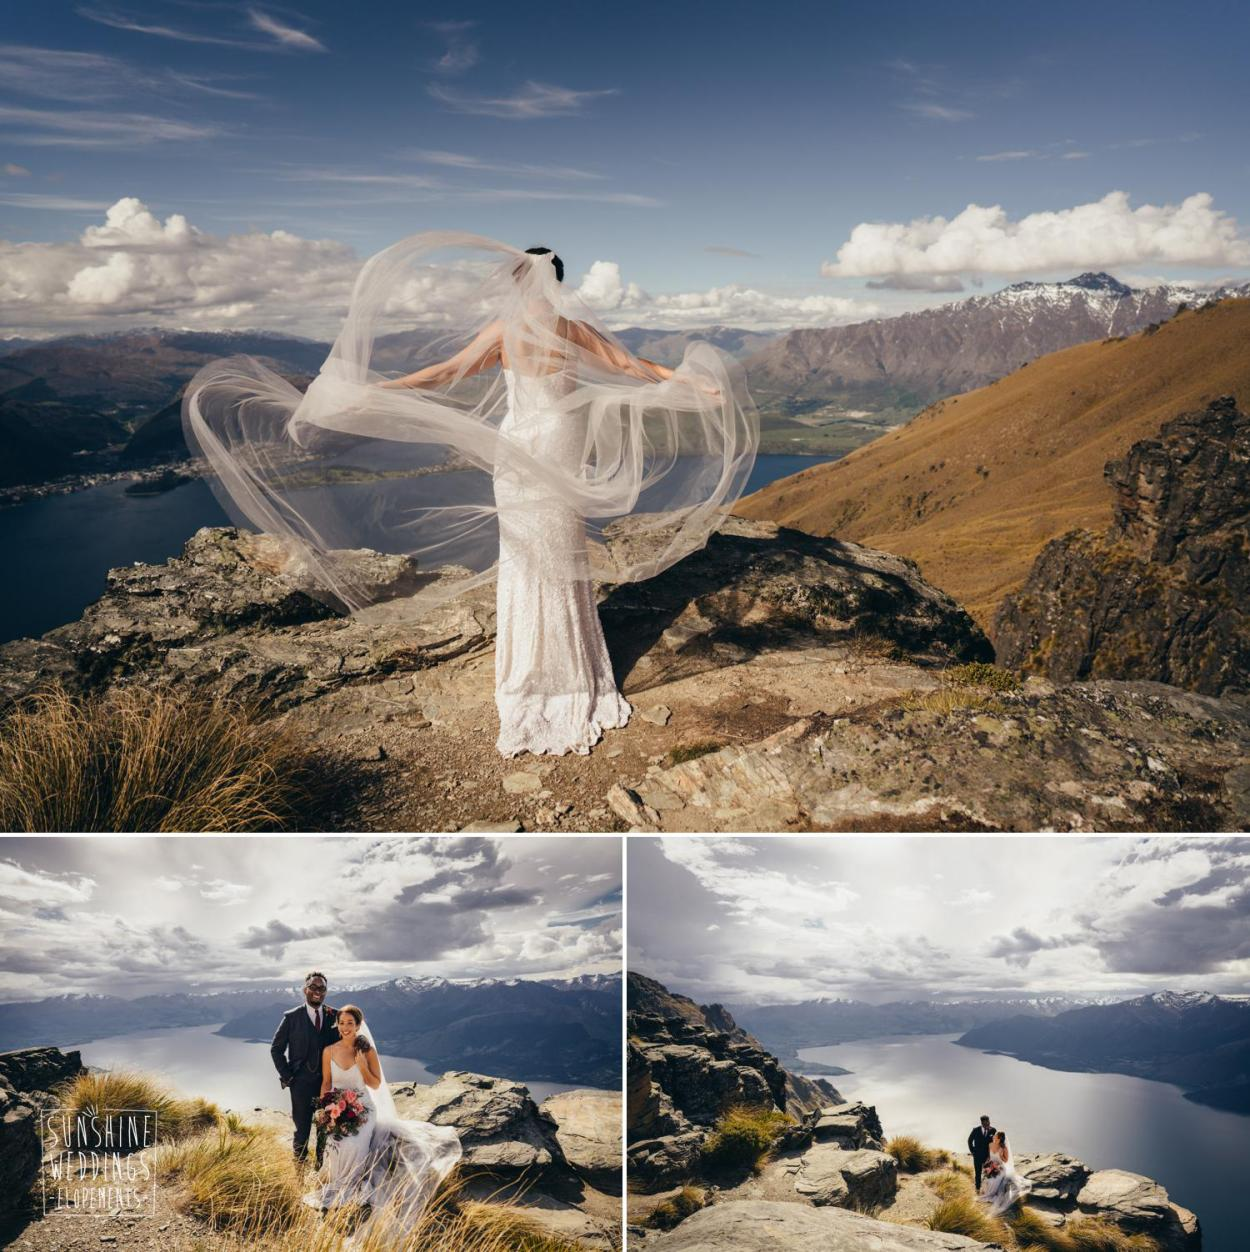 Mountain wedding planner Sunshine Weddings